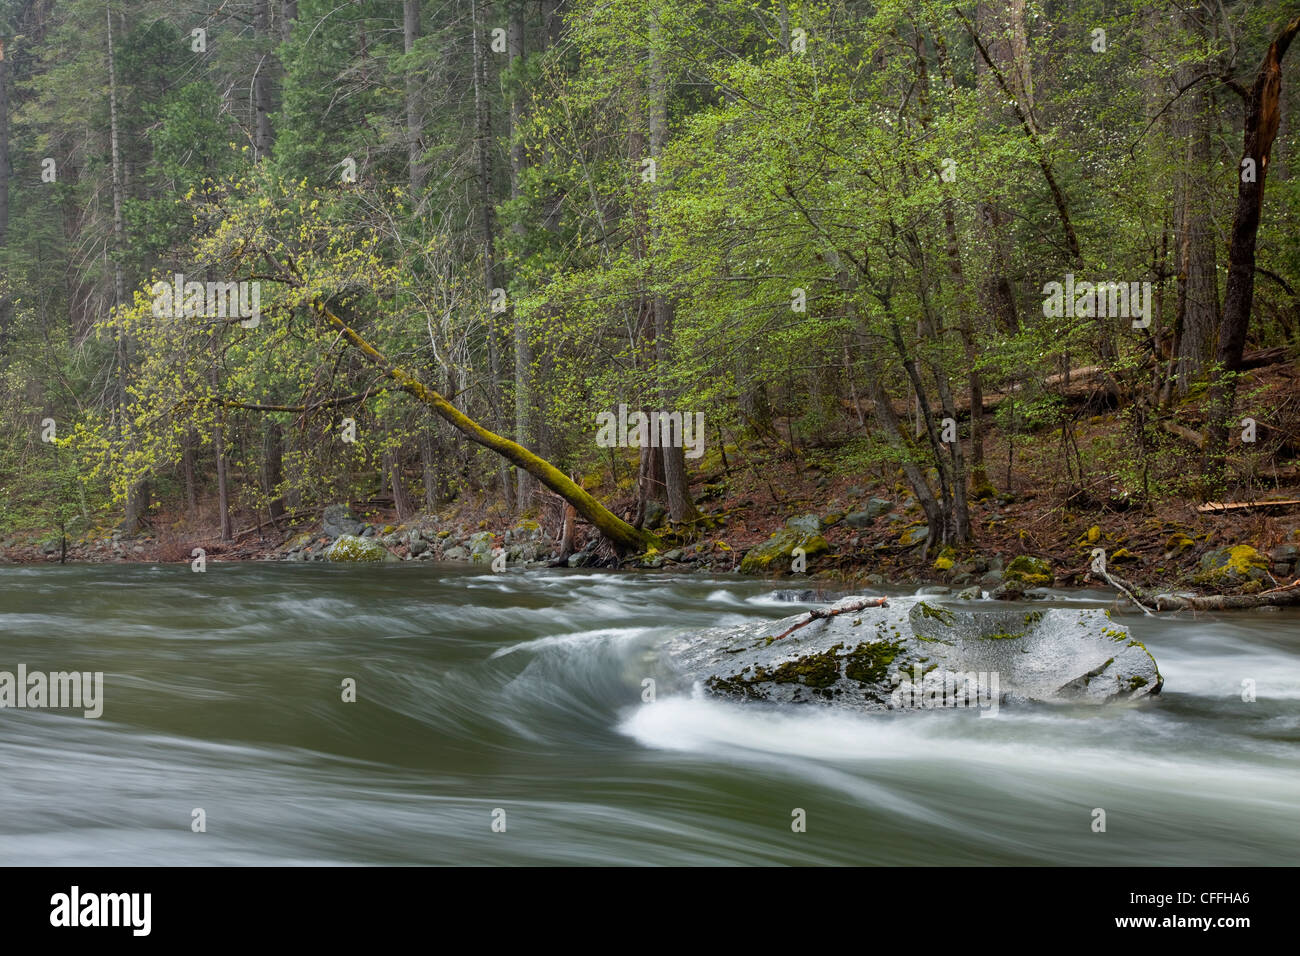 Scenic image of the Merced River flowing through Yosemite National Park, CA. - Stock Image